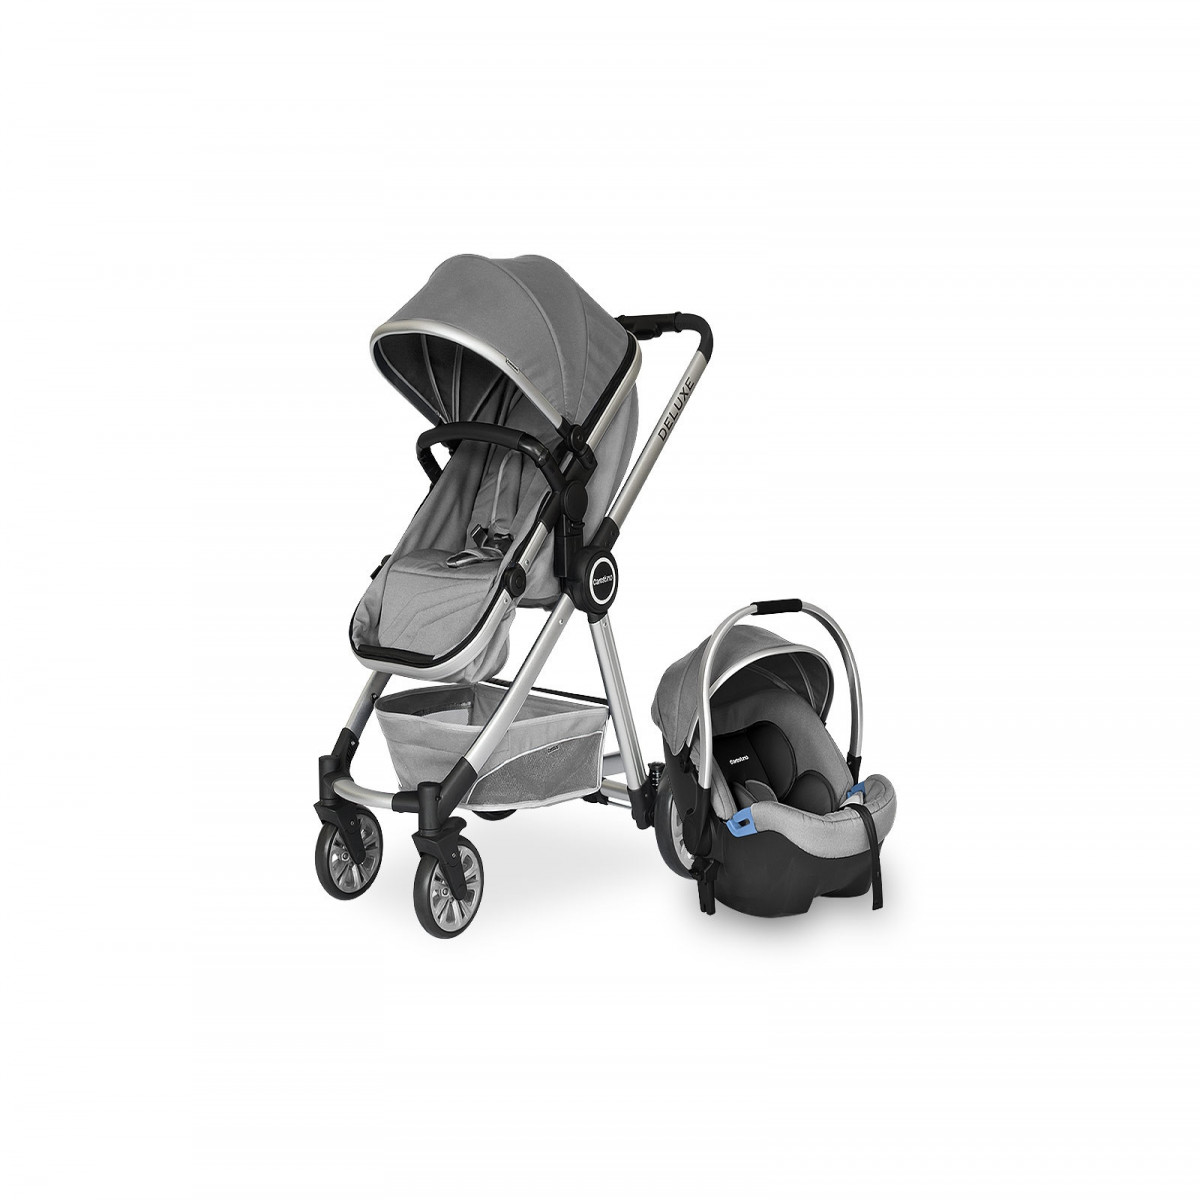 Coche Deluxe Travel System Carestino gris